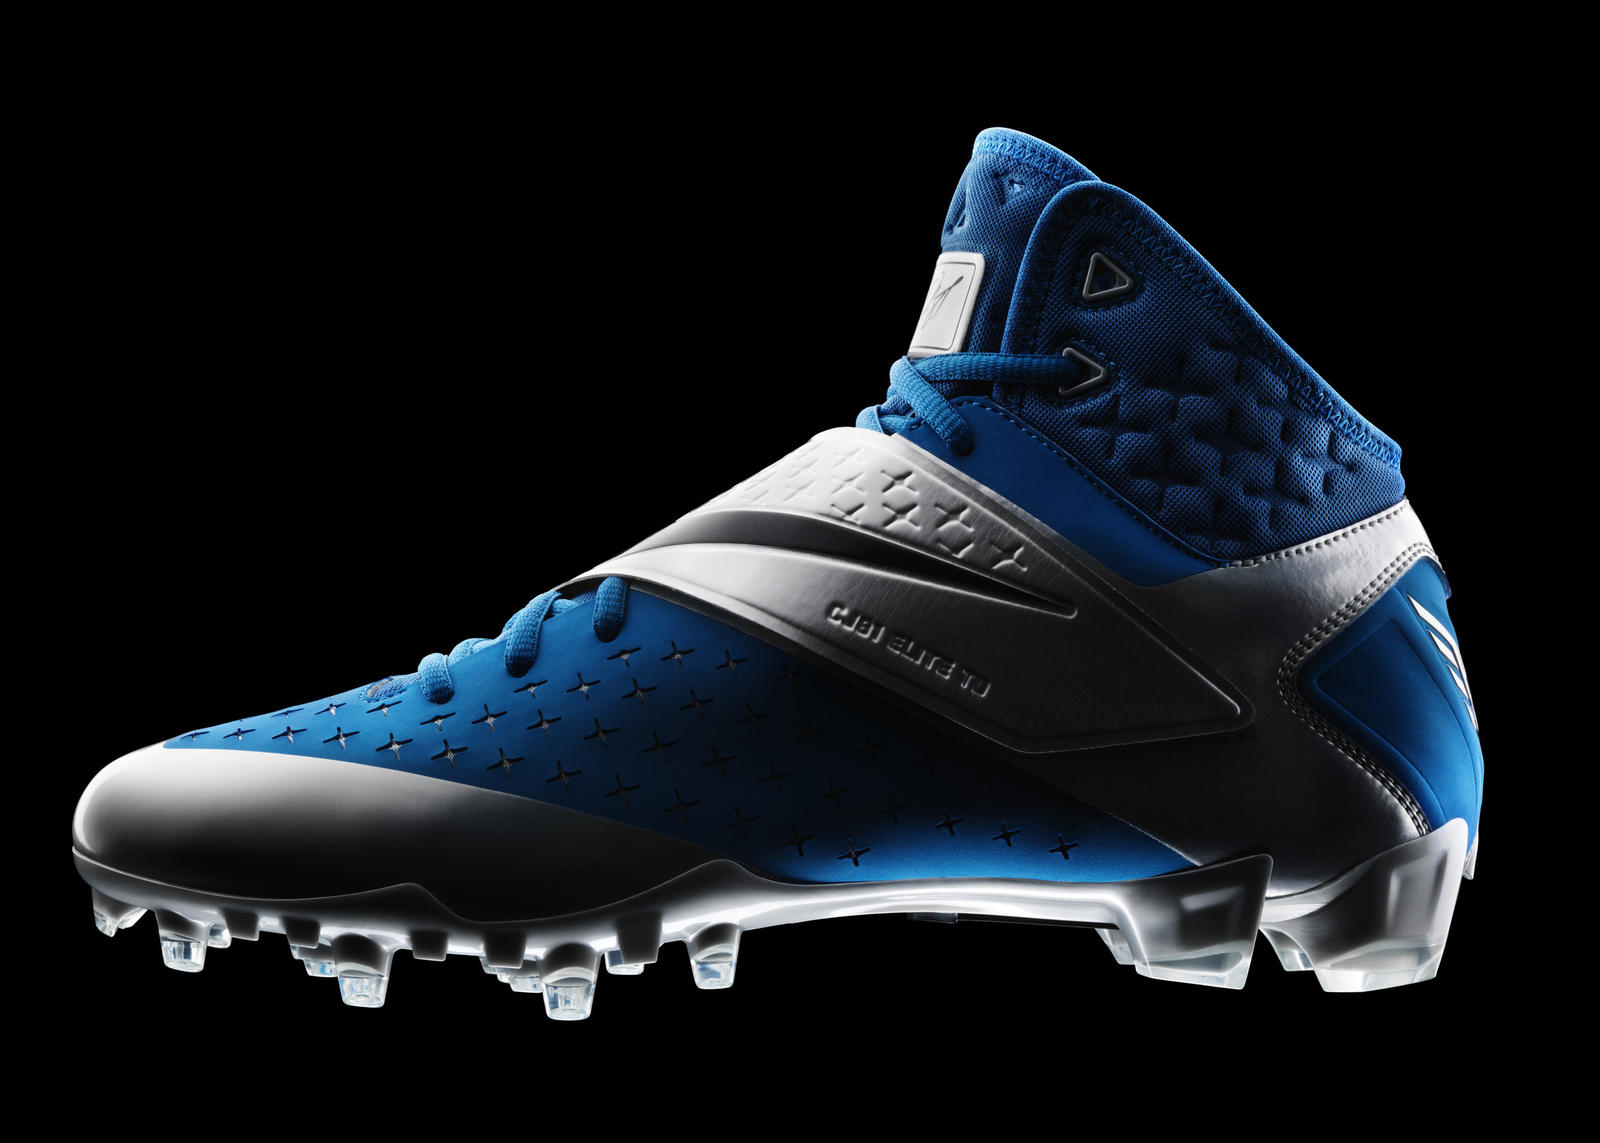 cj81-elite-cleat-profile